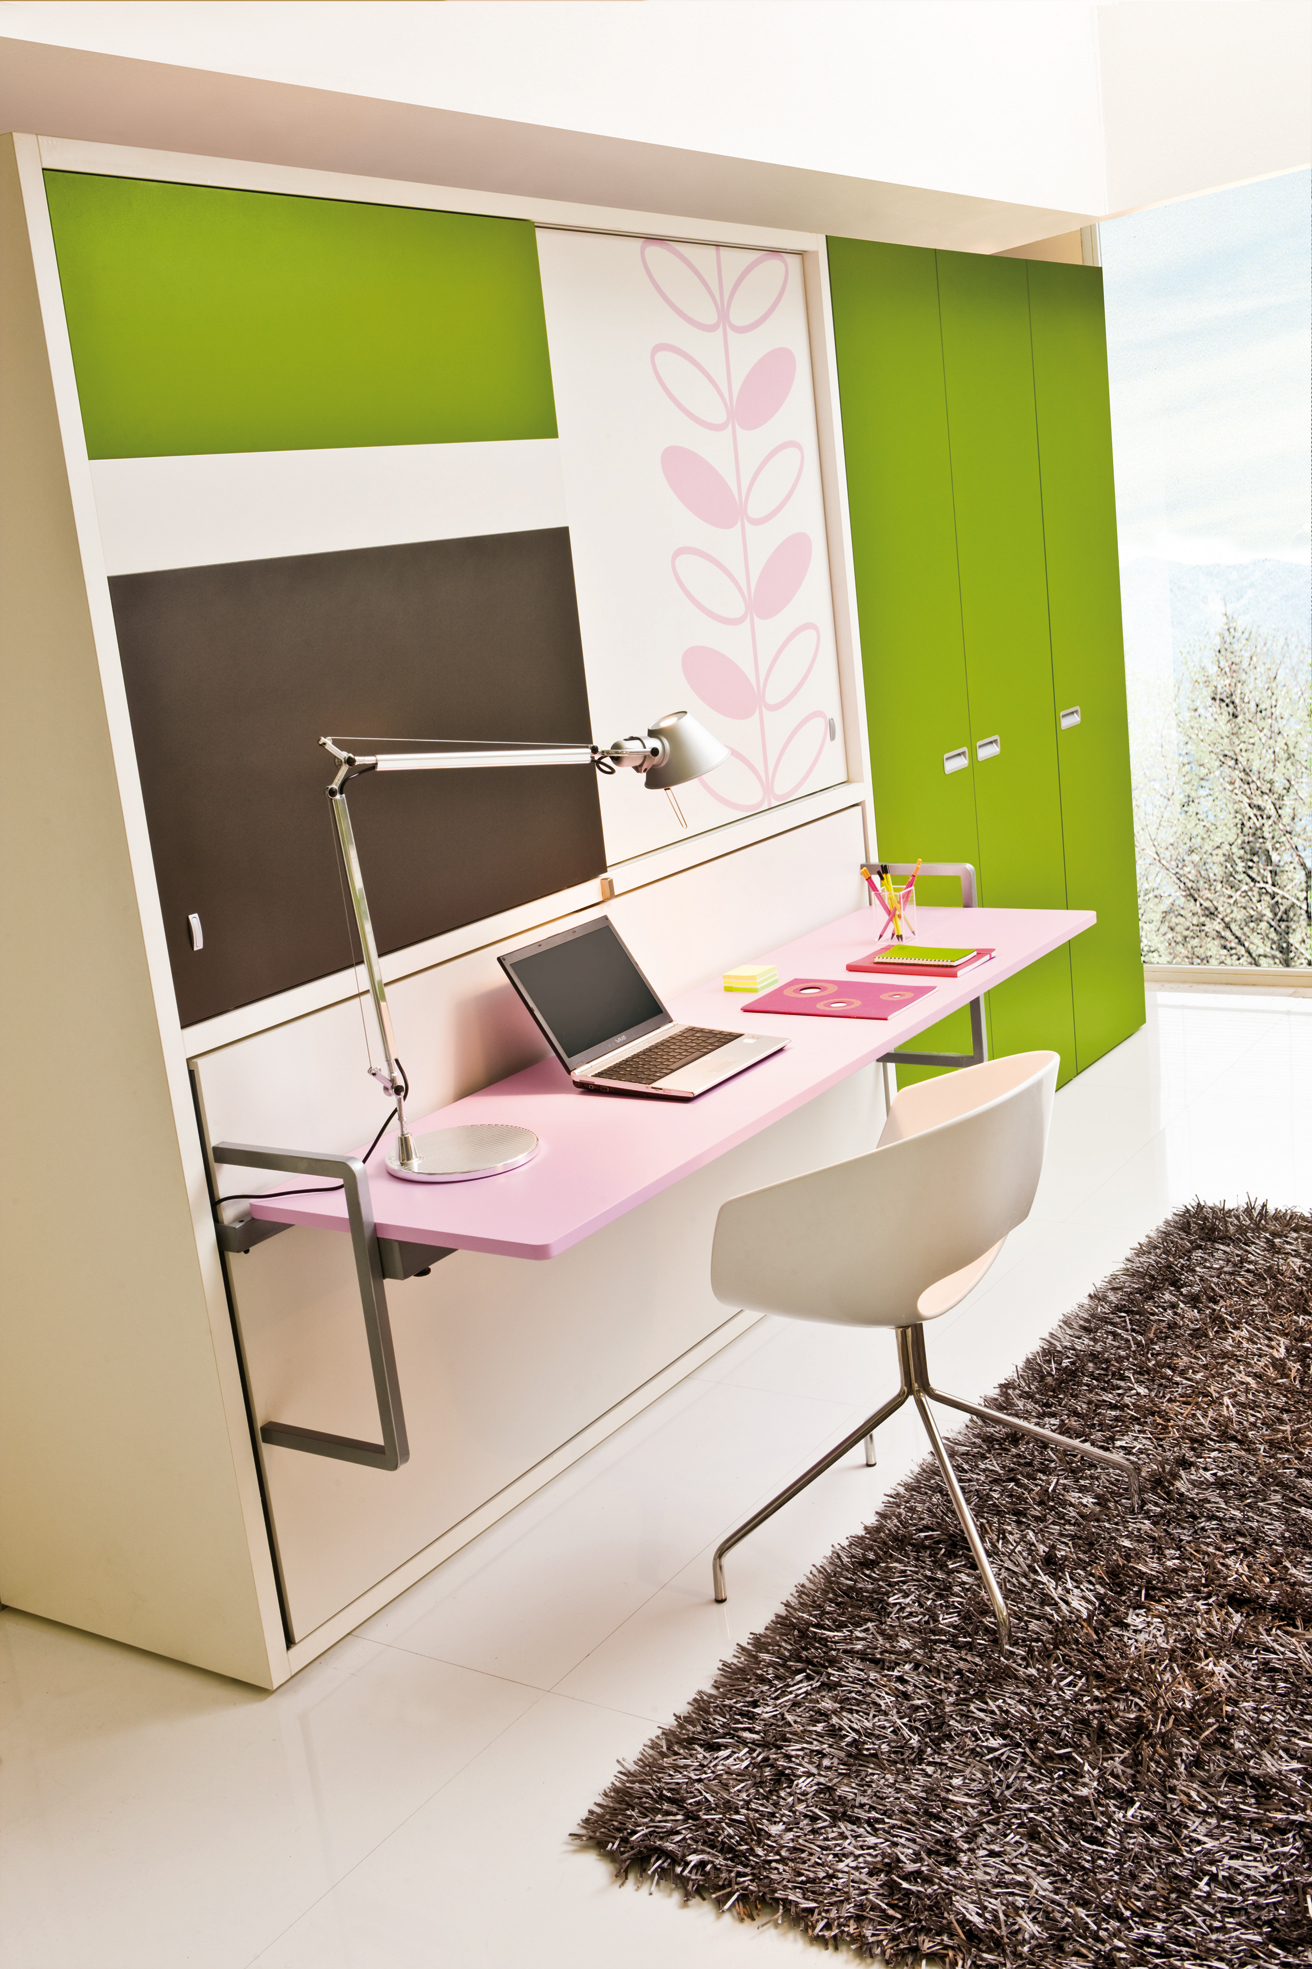 Study Desk Bed Clei Wall Beds London Poppi Board Wall Bed With Office Desk And Wardrobe